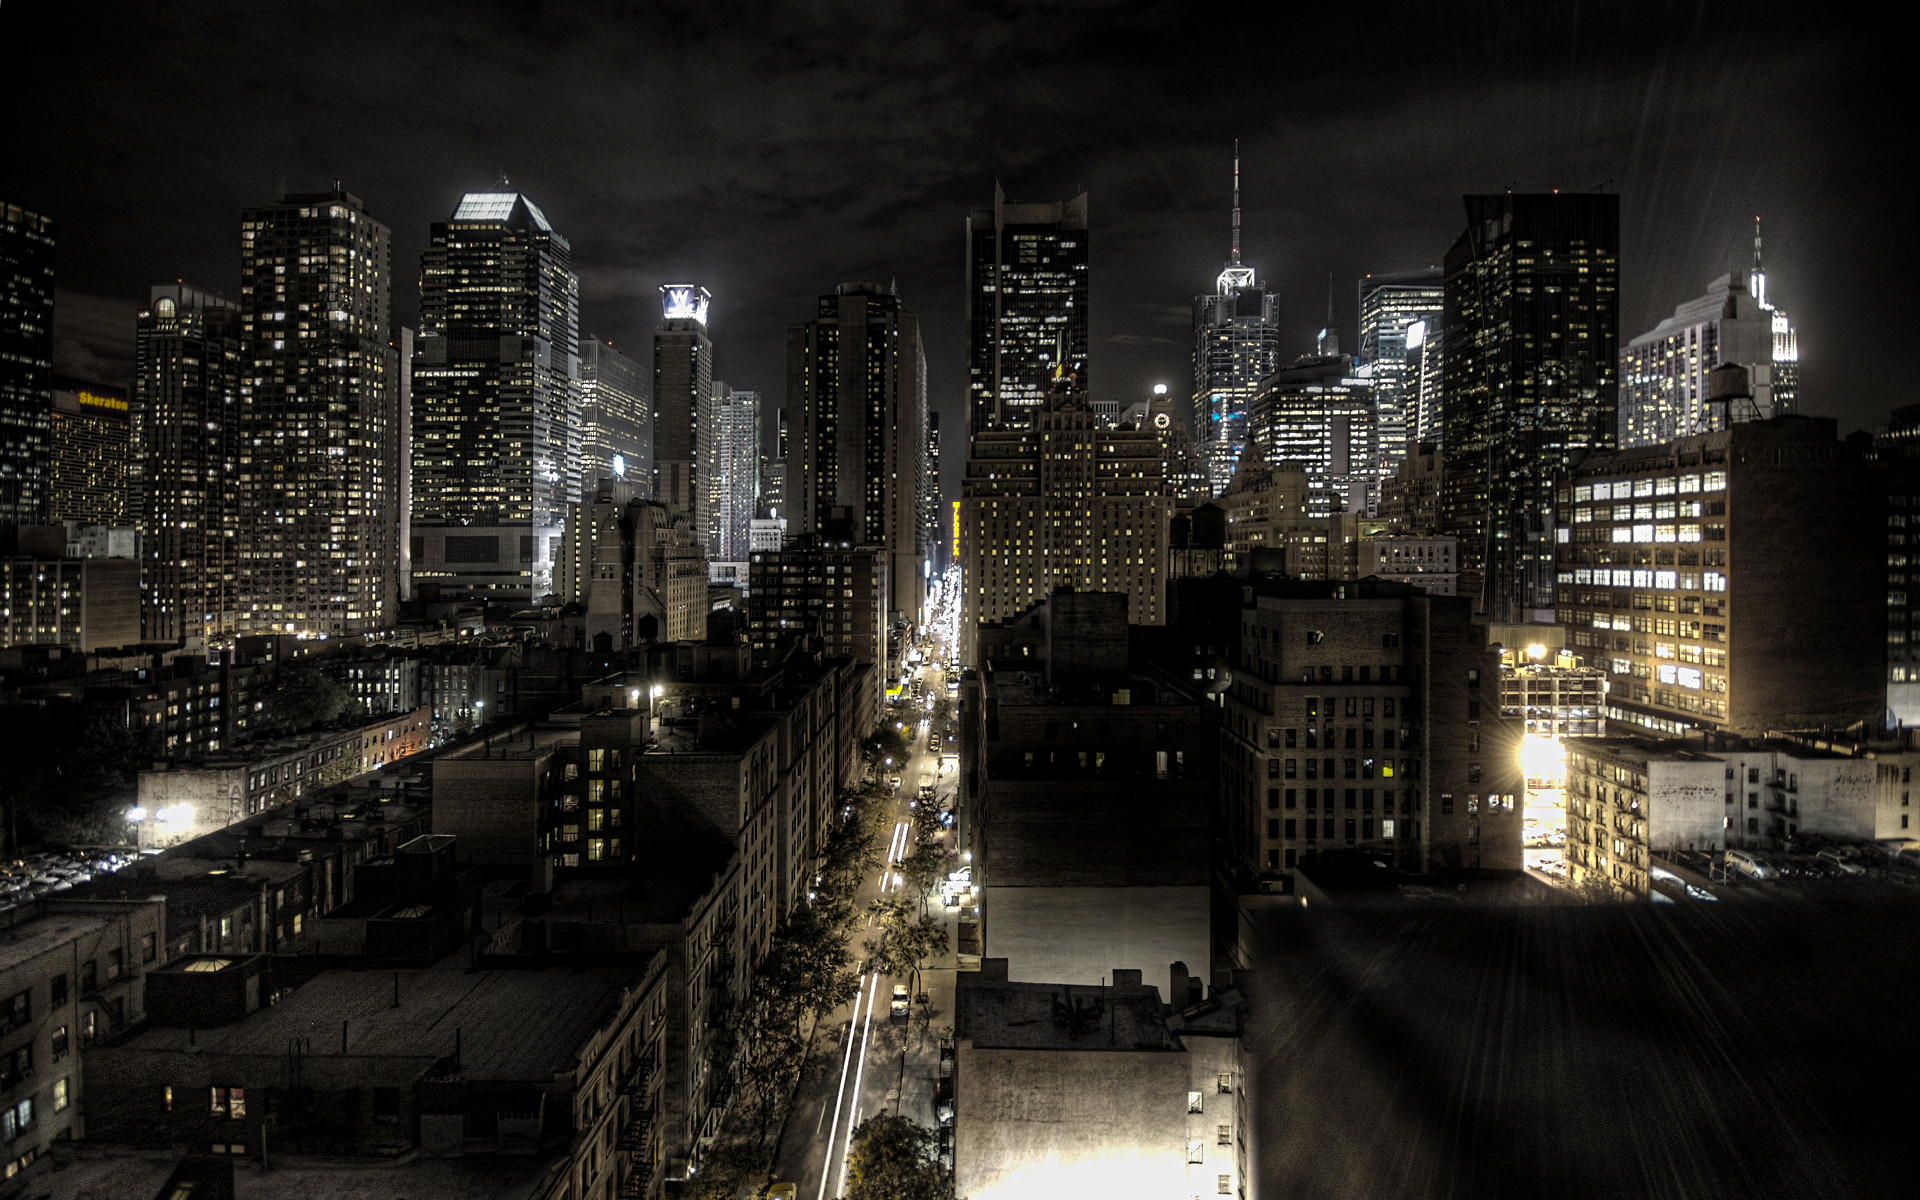 New York At Night Wallpapers Full HD with High Definition 1920x1200